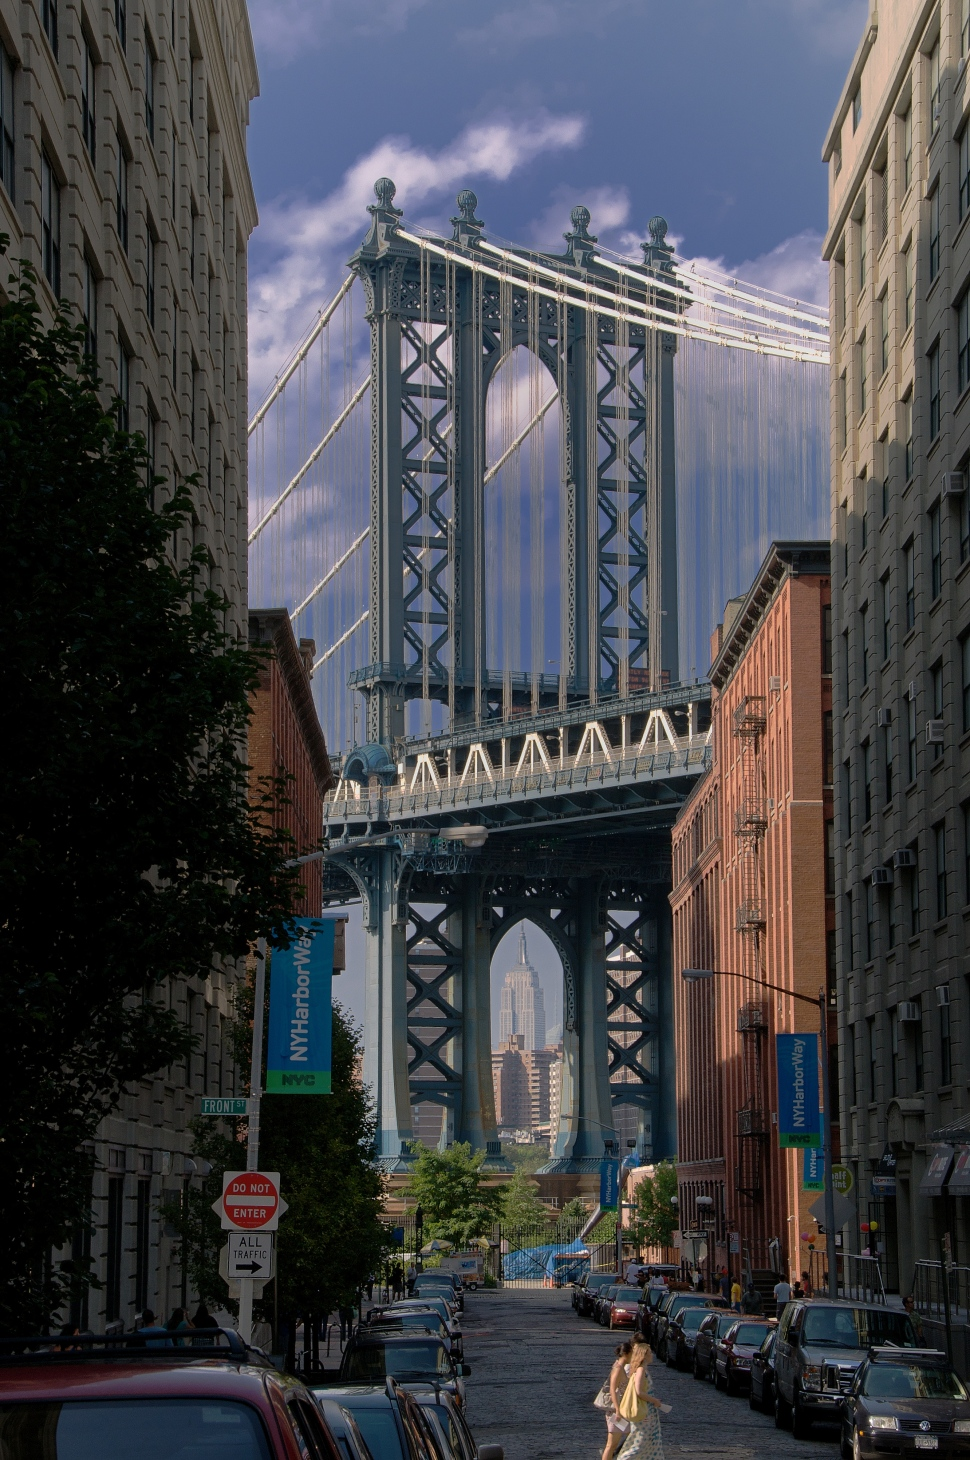 Empire_State_framed_by_the_Manhattan_Bridge_July_2009.jpg